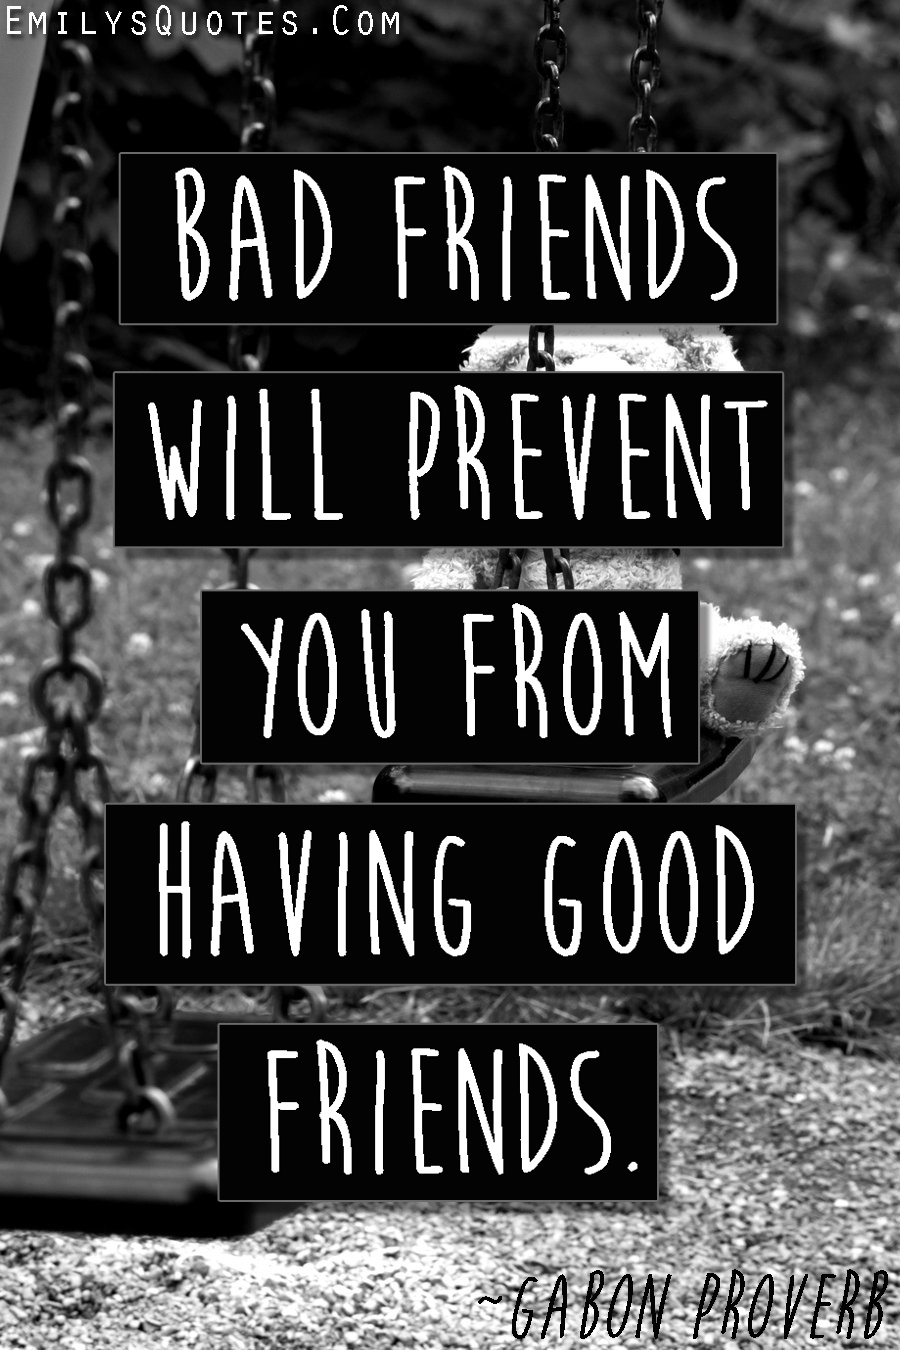 Quotes About Bad Friends And Good Friends EmilysQuotes.Co...